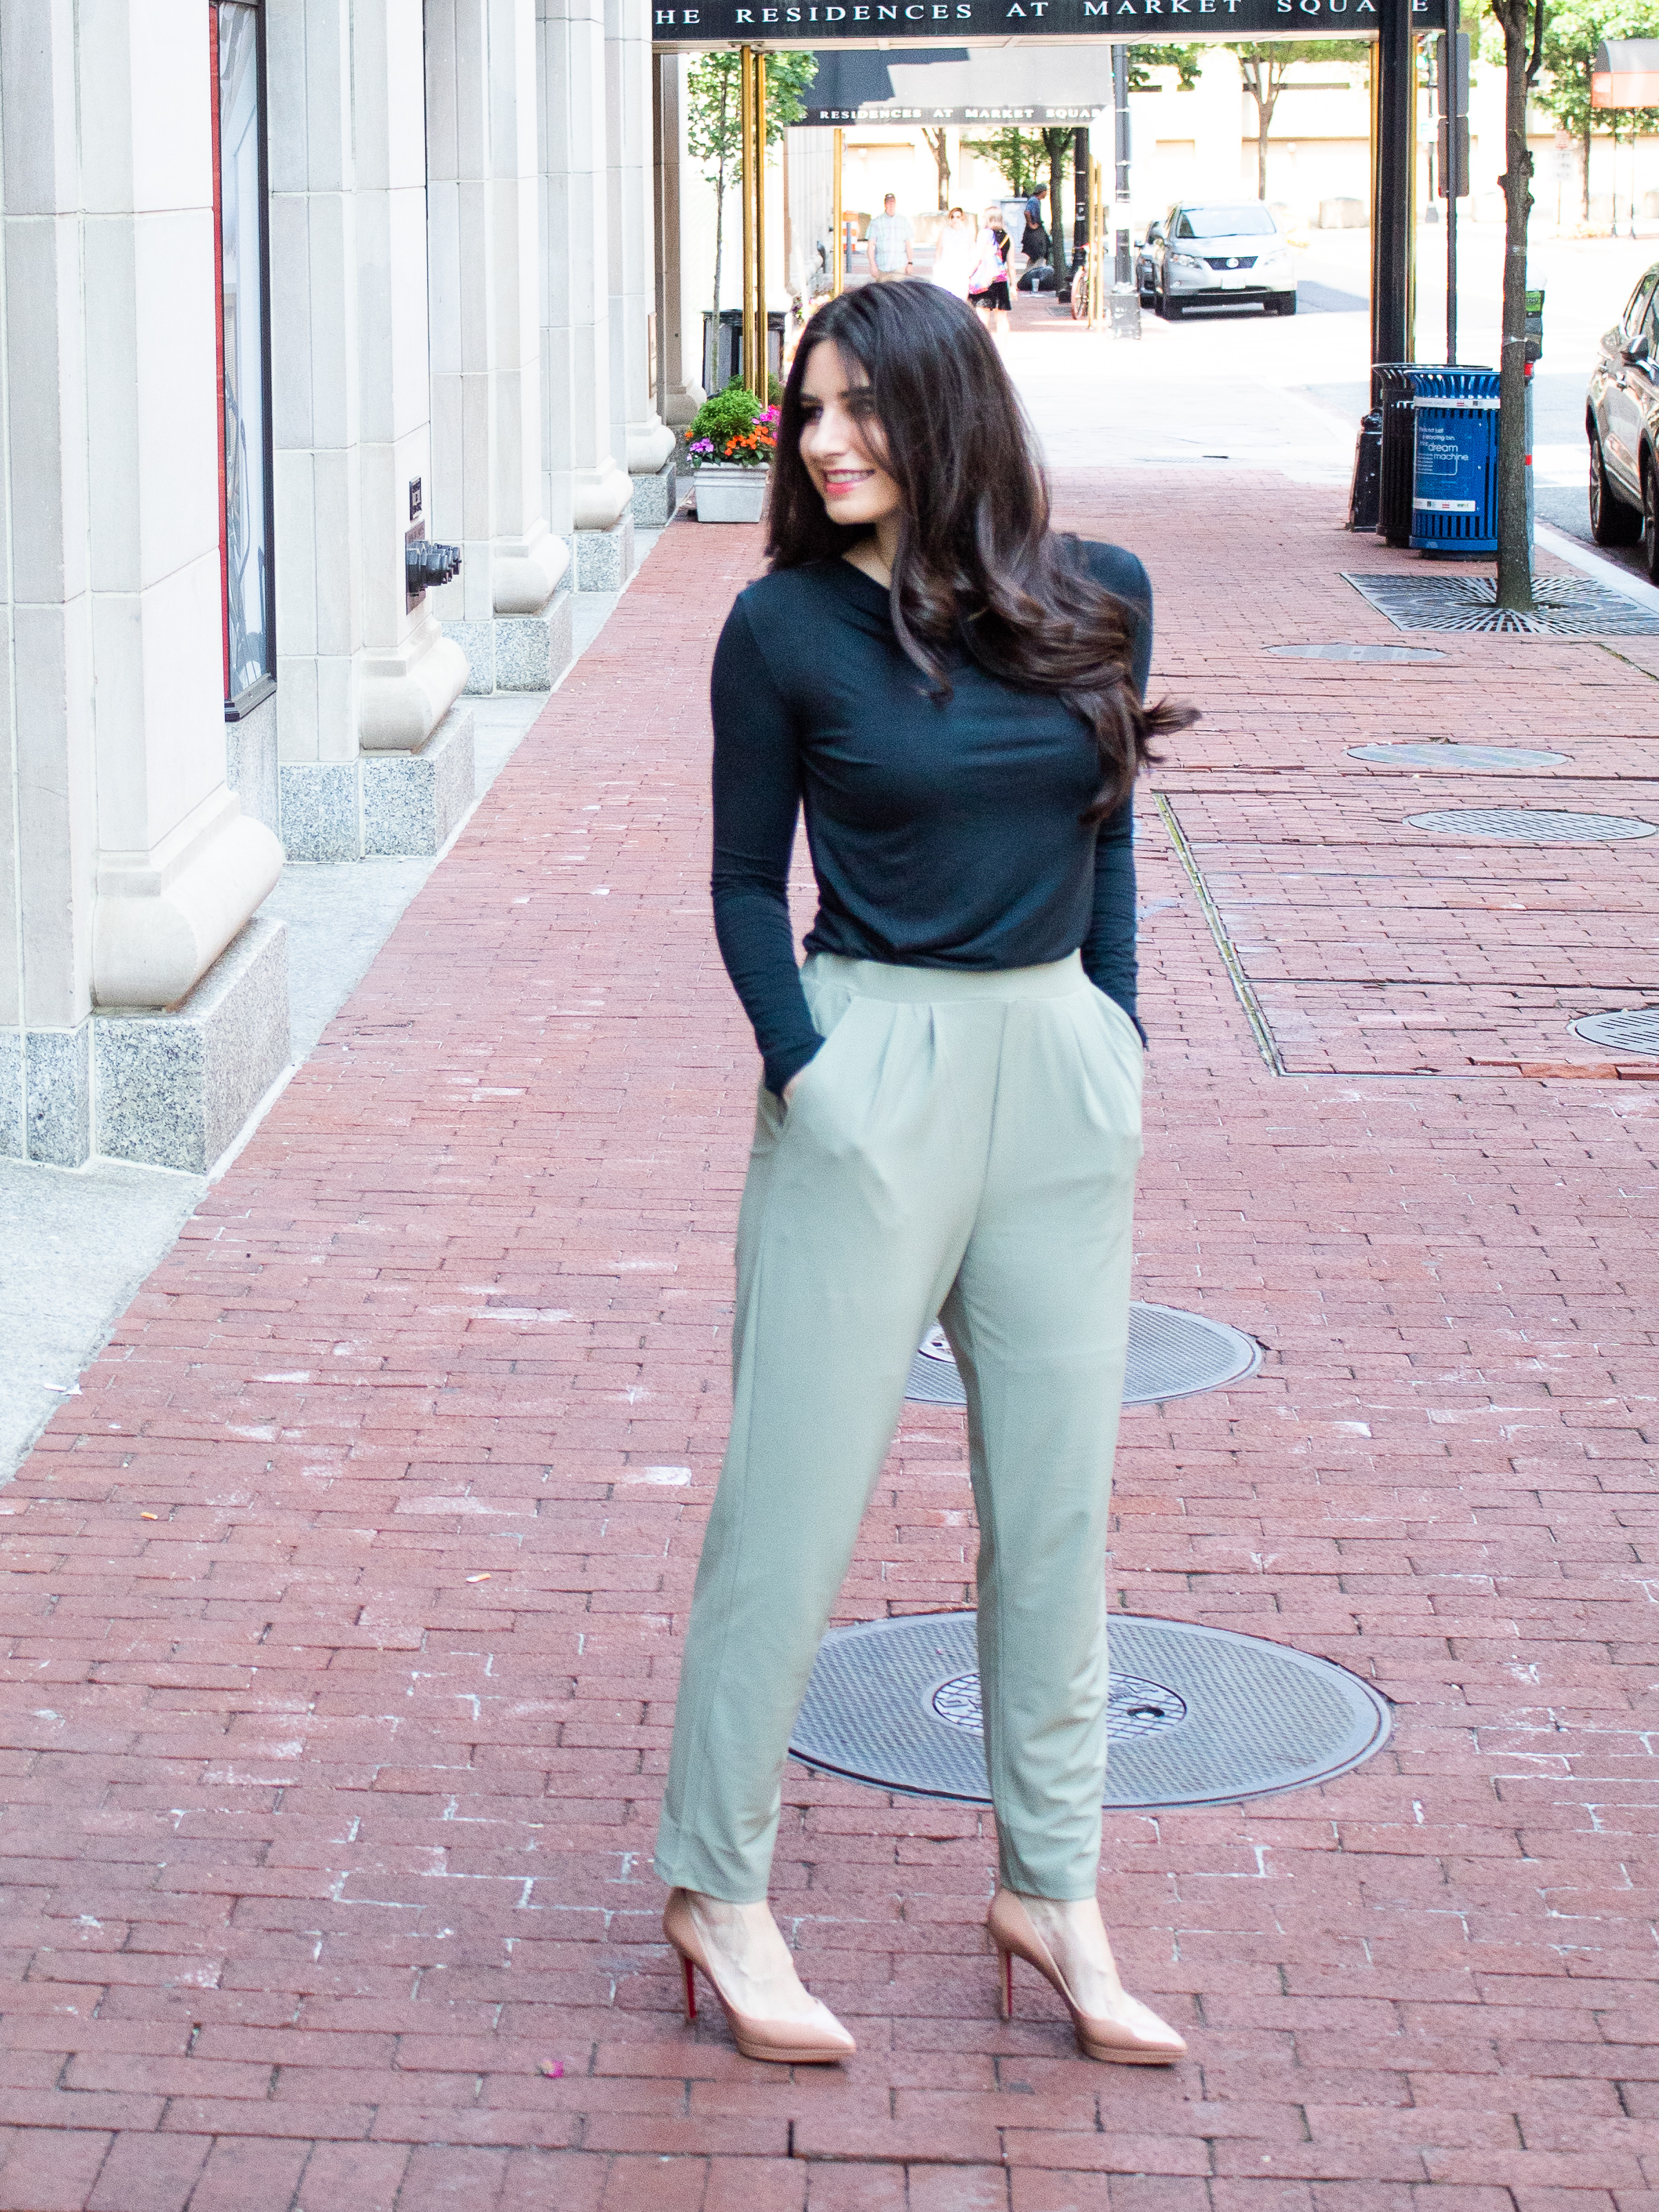 One of the best things about these tapered pants is there are no zippers or buttons, just elastic! They are super comfy and I am loving the fun colors for summer. The only drawback is the fabric is kind of thin and they're not lined. So, I definitely wear  my spanx  ( https://rstyle.me/n/dm3tgccd2mf)  with these if I'm at work! I paired these pants with a dark forest green, long sleeve top, but they would pair nicely with any neutral. The fabric of these pants also appears to be fairly wrinkle-resistant, which is a plus! I bought these from Nordstrom, and while they are out of this specific color, I linked to the same pants in a couple different colors, and then a few different styles in this light green color.